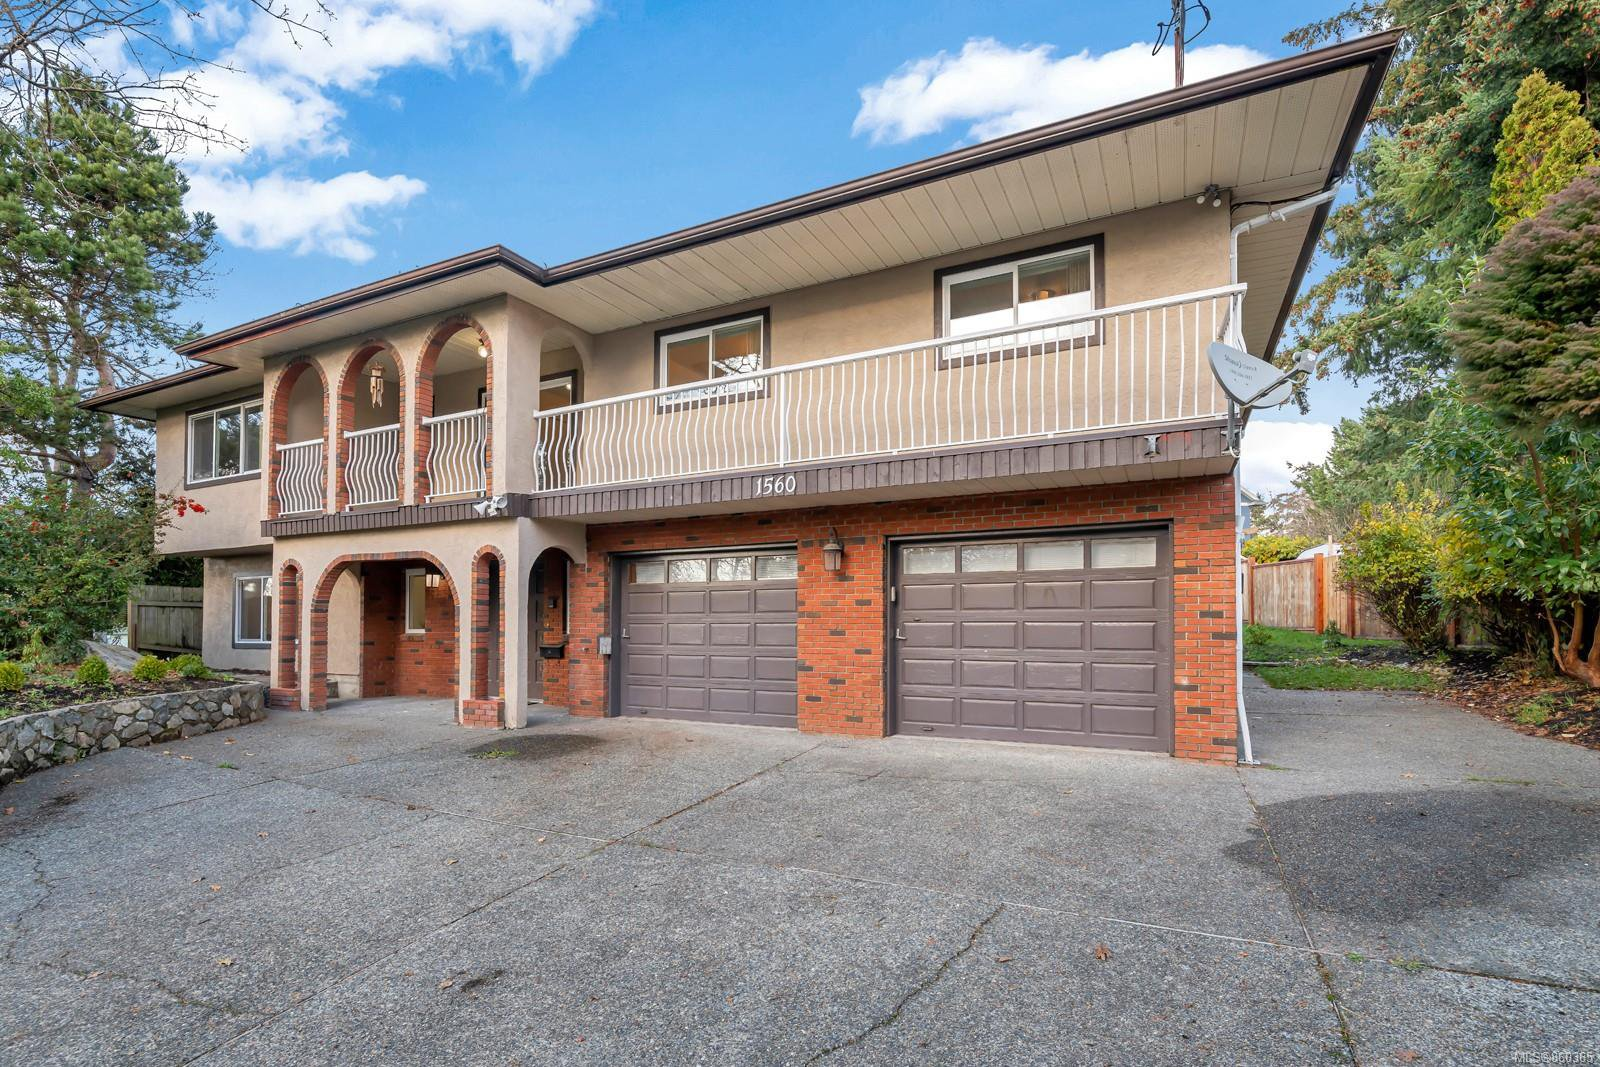 Main Photo: 1560 Brodick Cres in : SE Mt Doug House for sale (Saanich East)  : MLS®# 860365